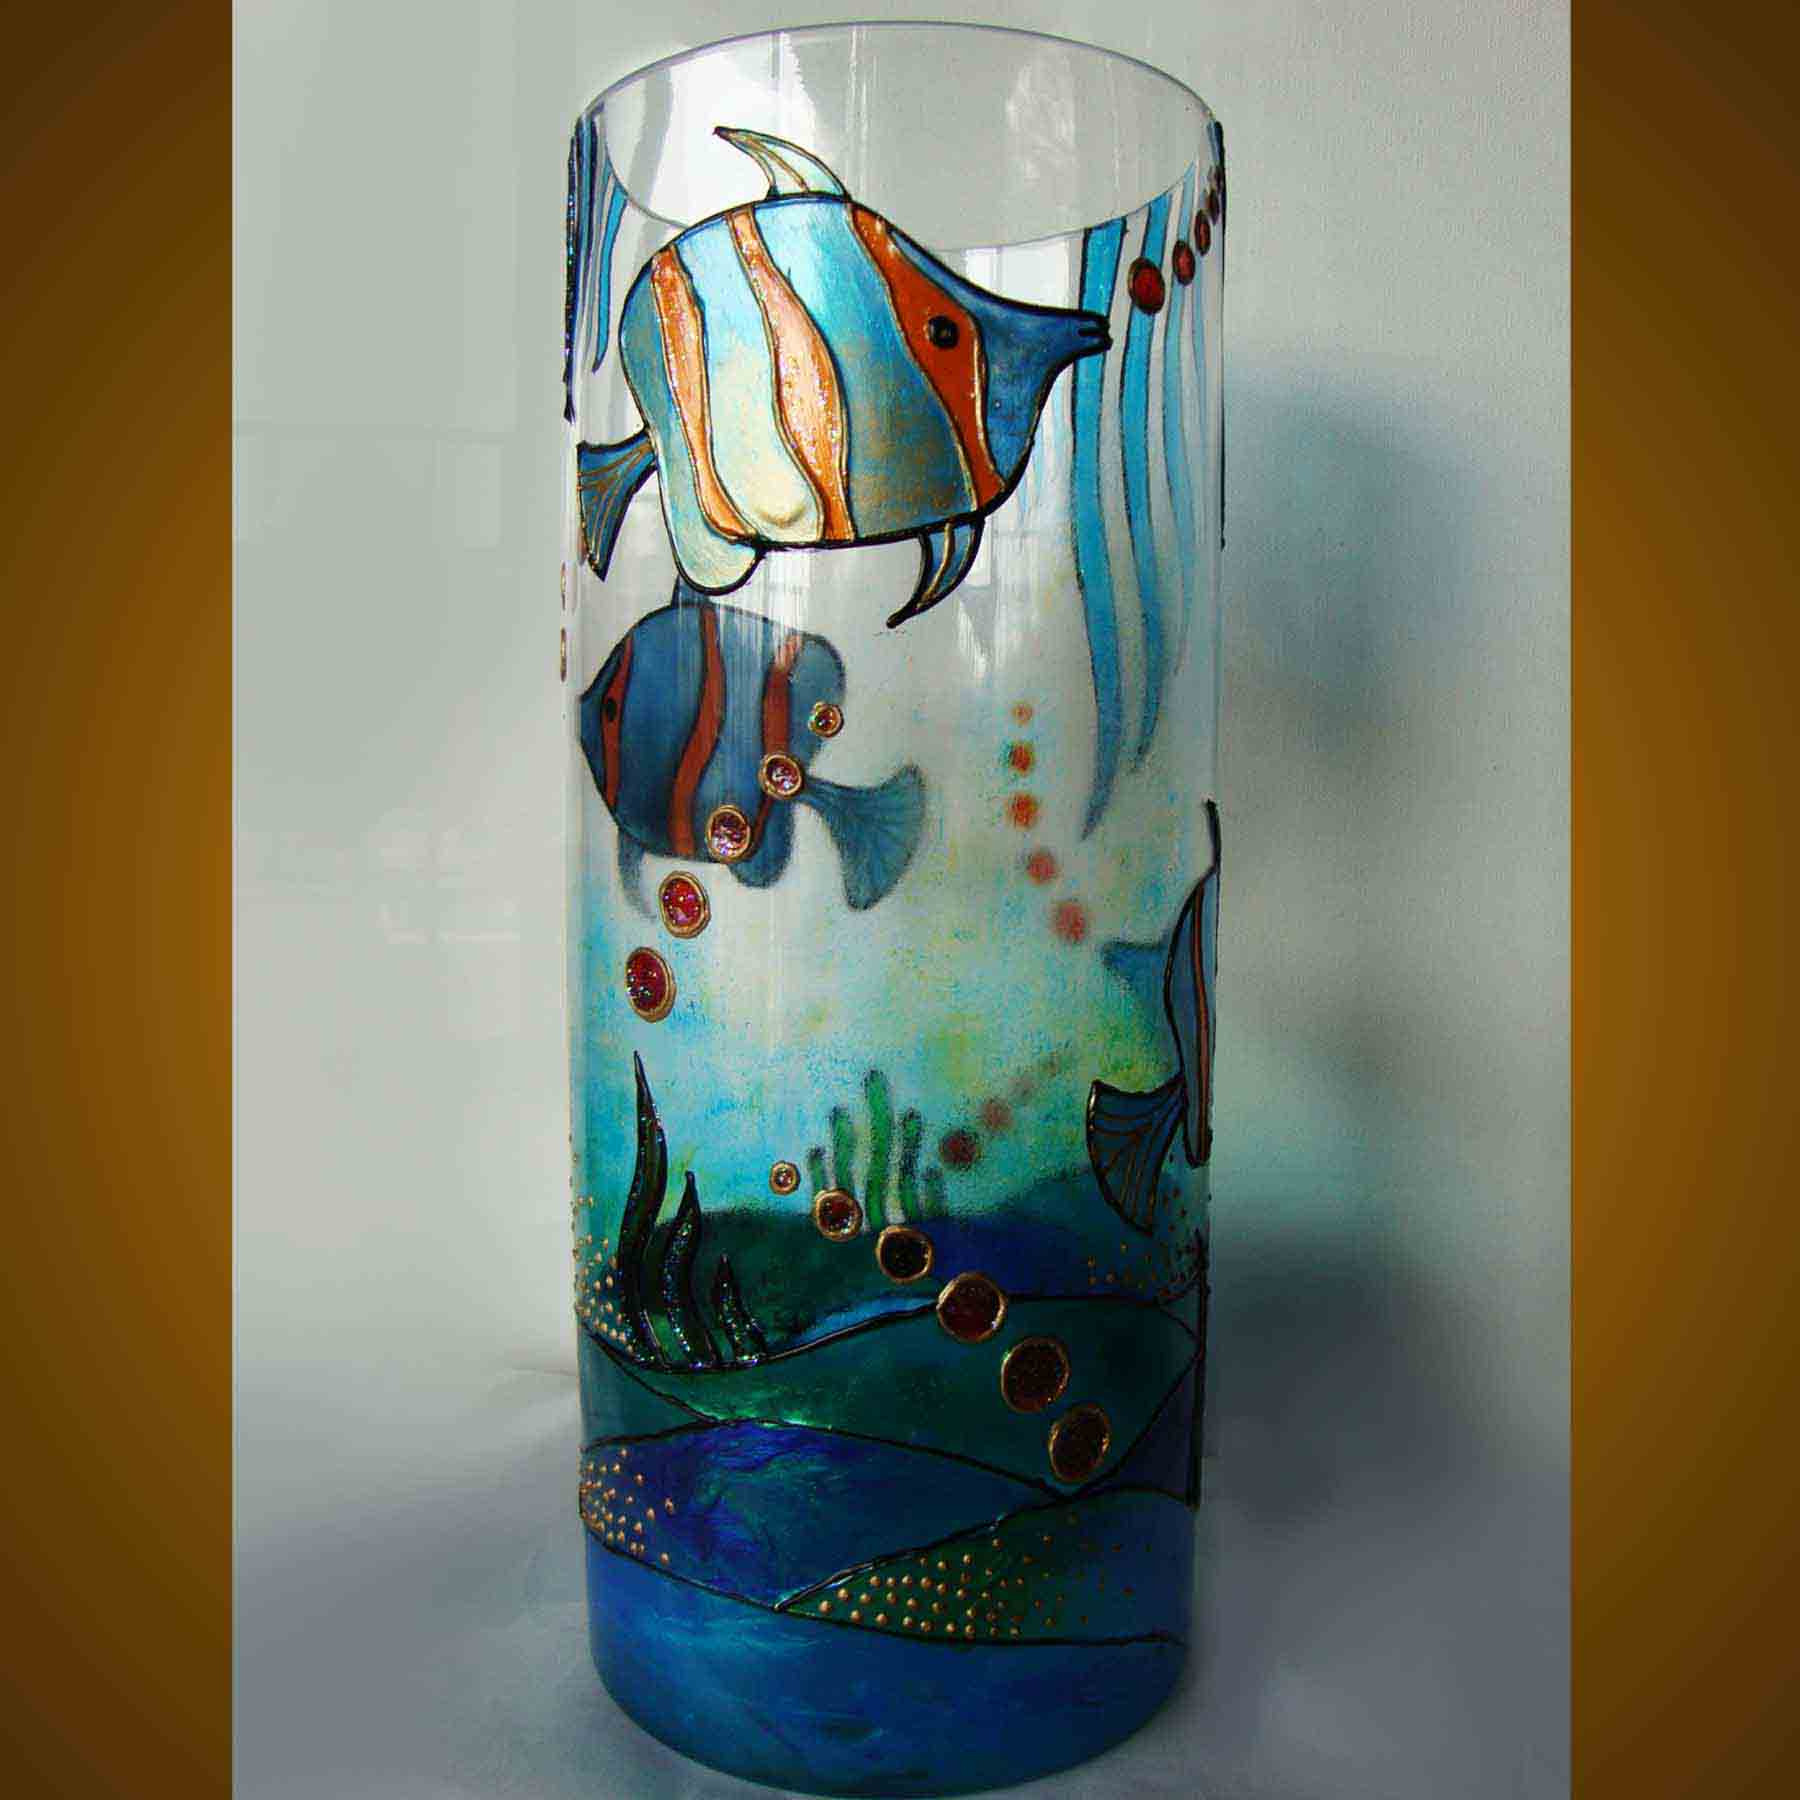 Diy glass painting patterns ideas - Designs in glasses for house decoration ...